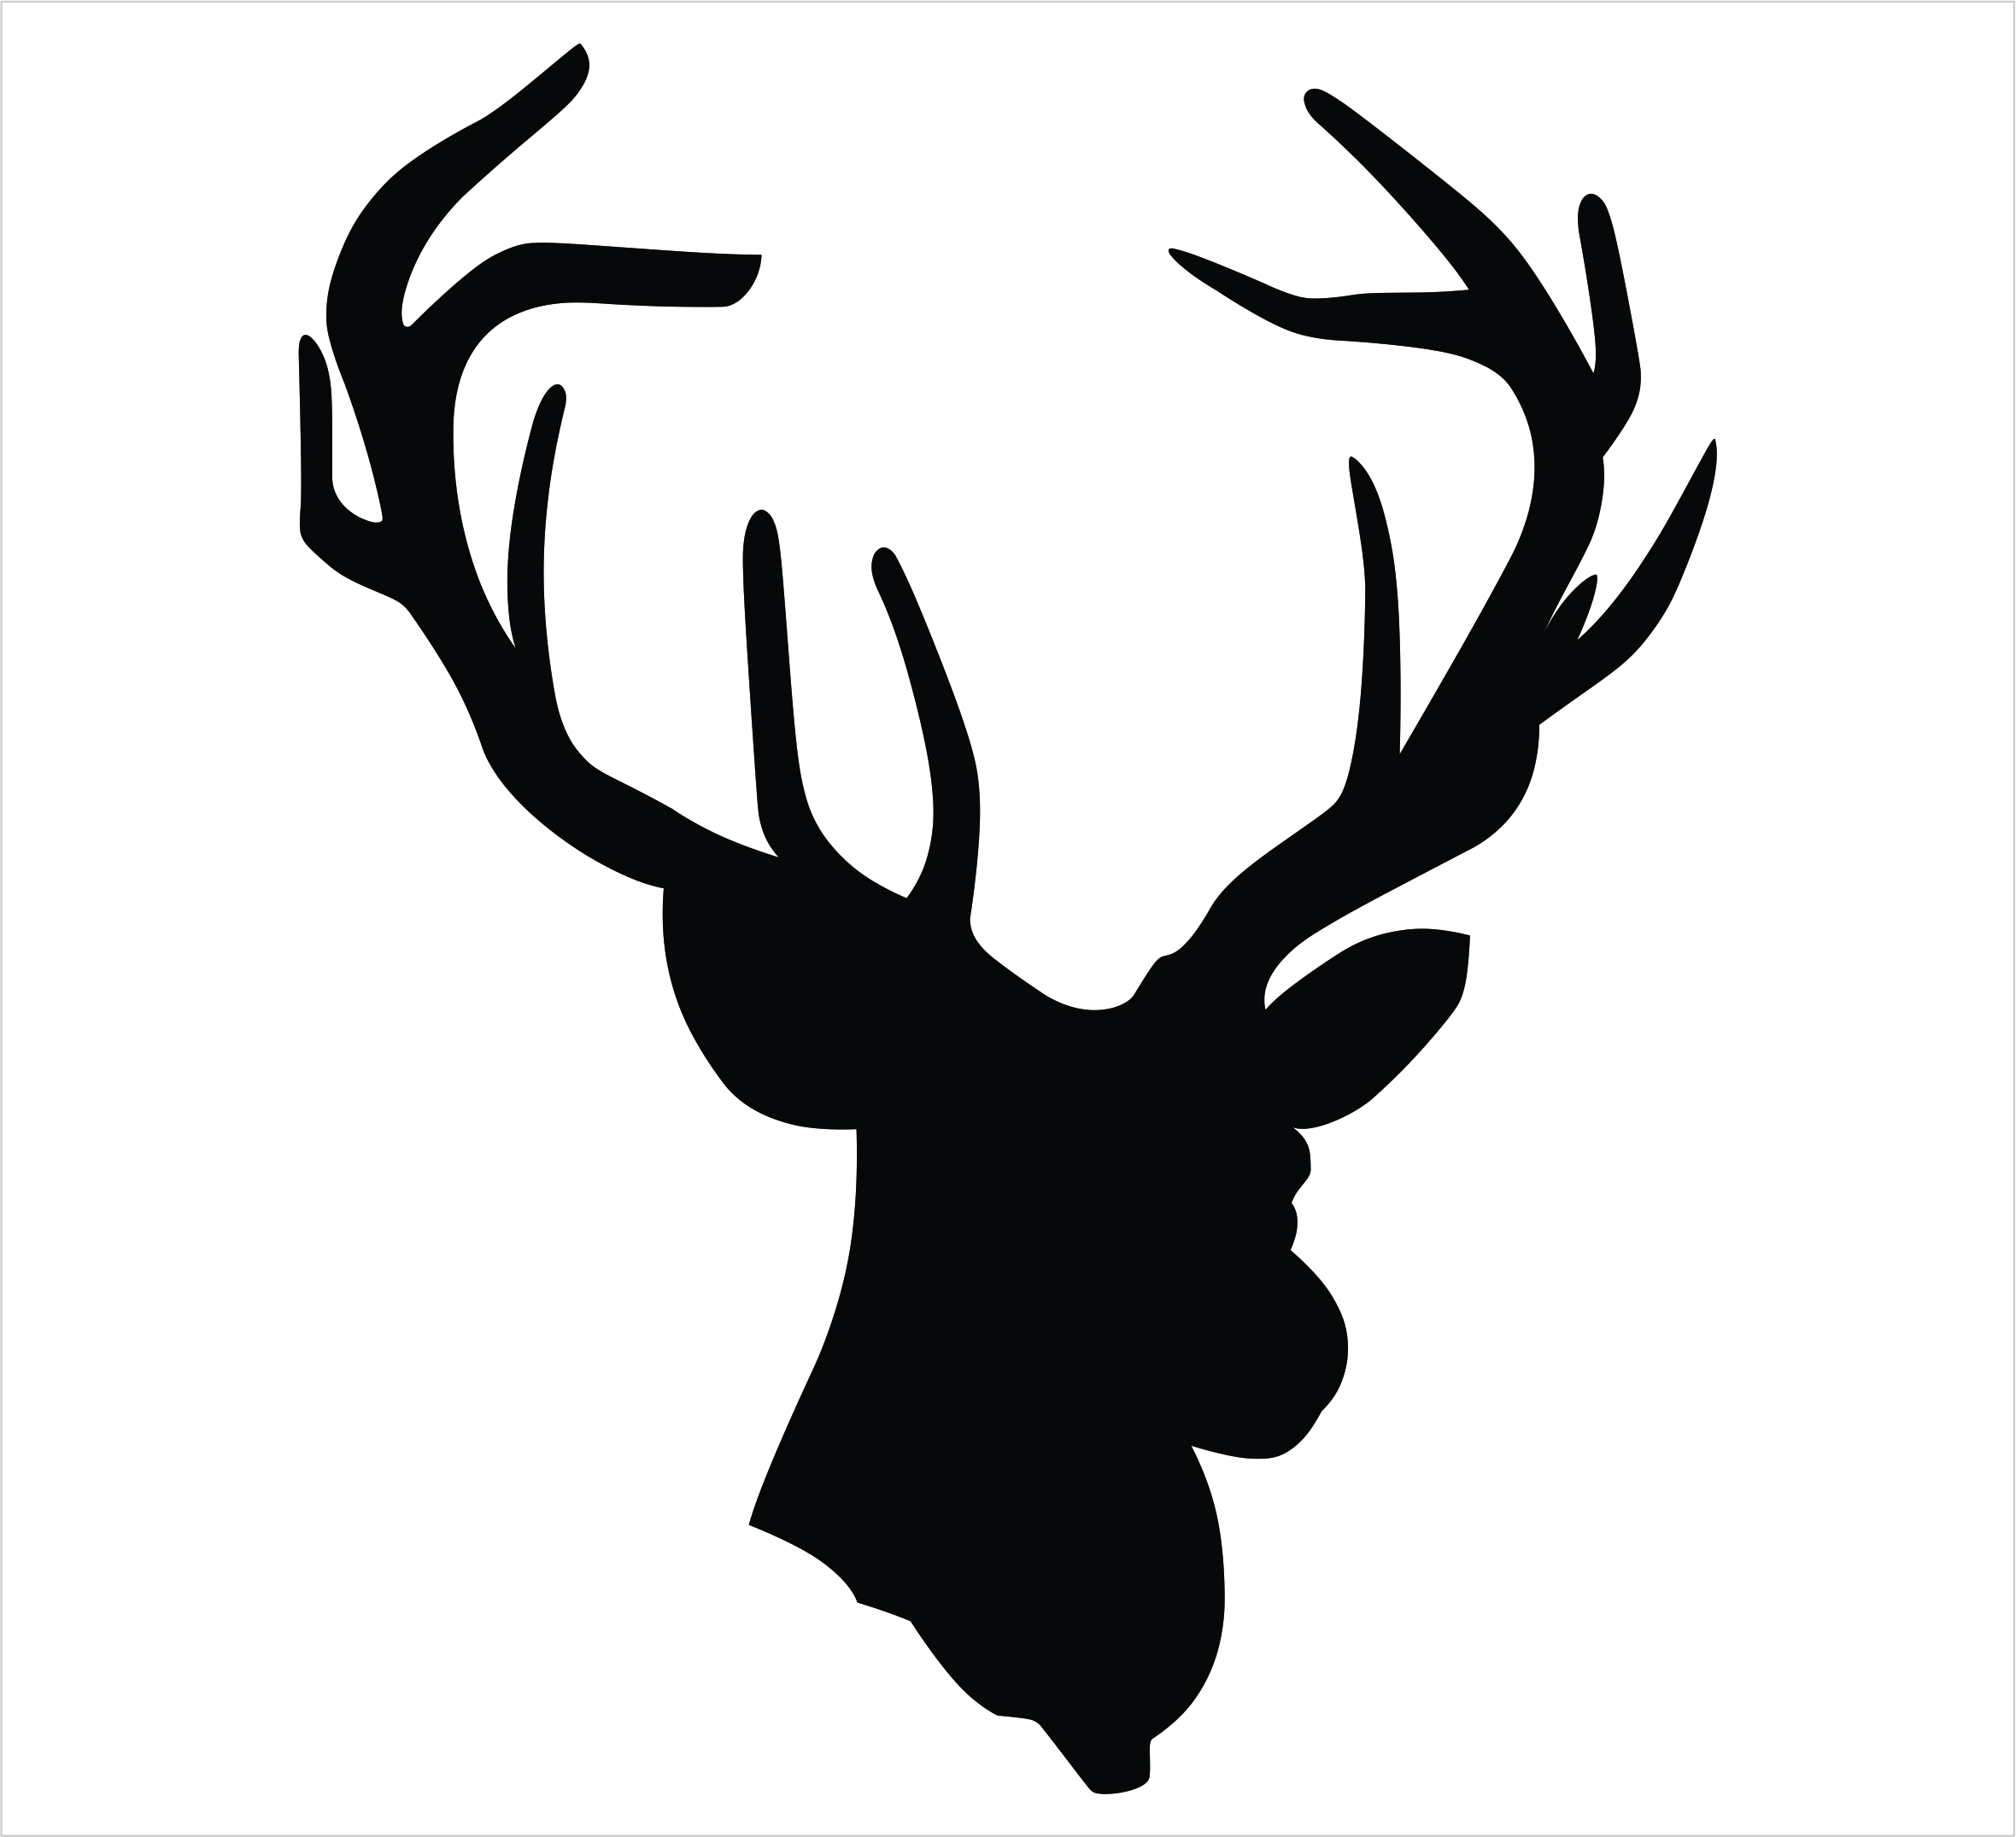 2360x2151 Deer Head Silhouette Free Download Clip Art On Bright Antlers